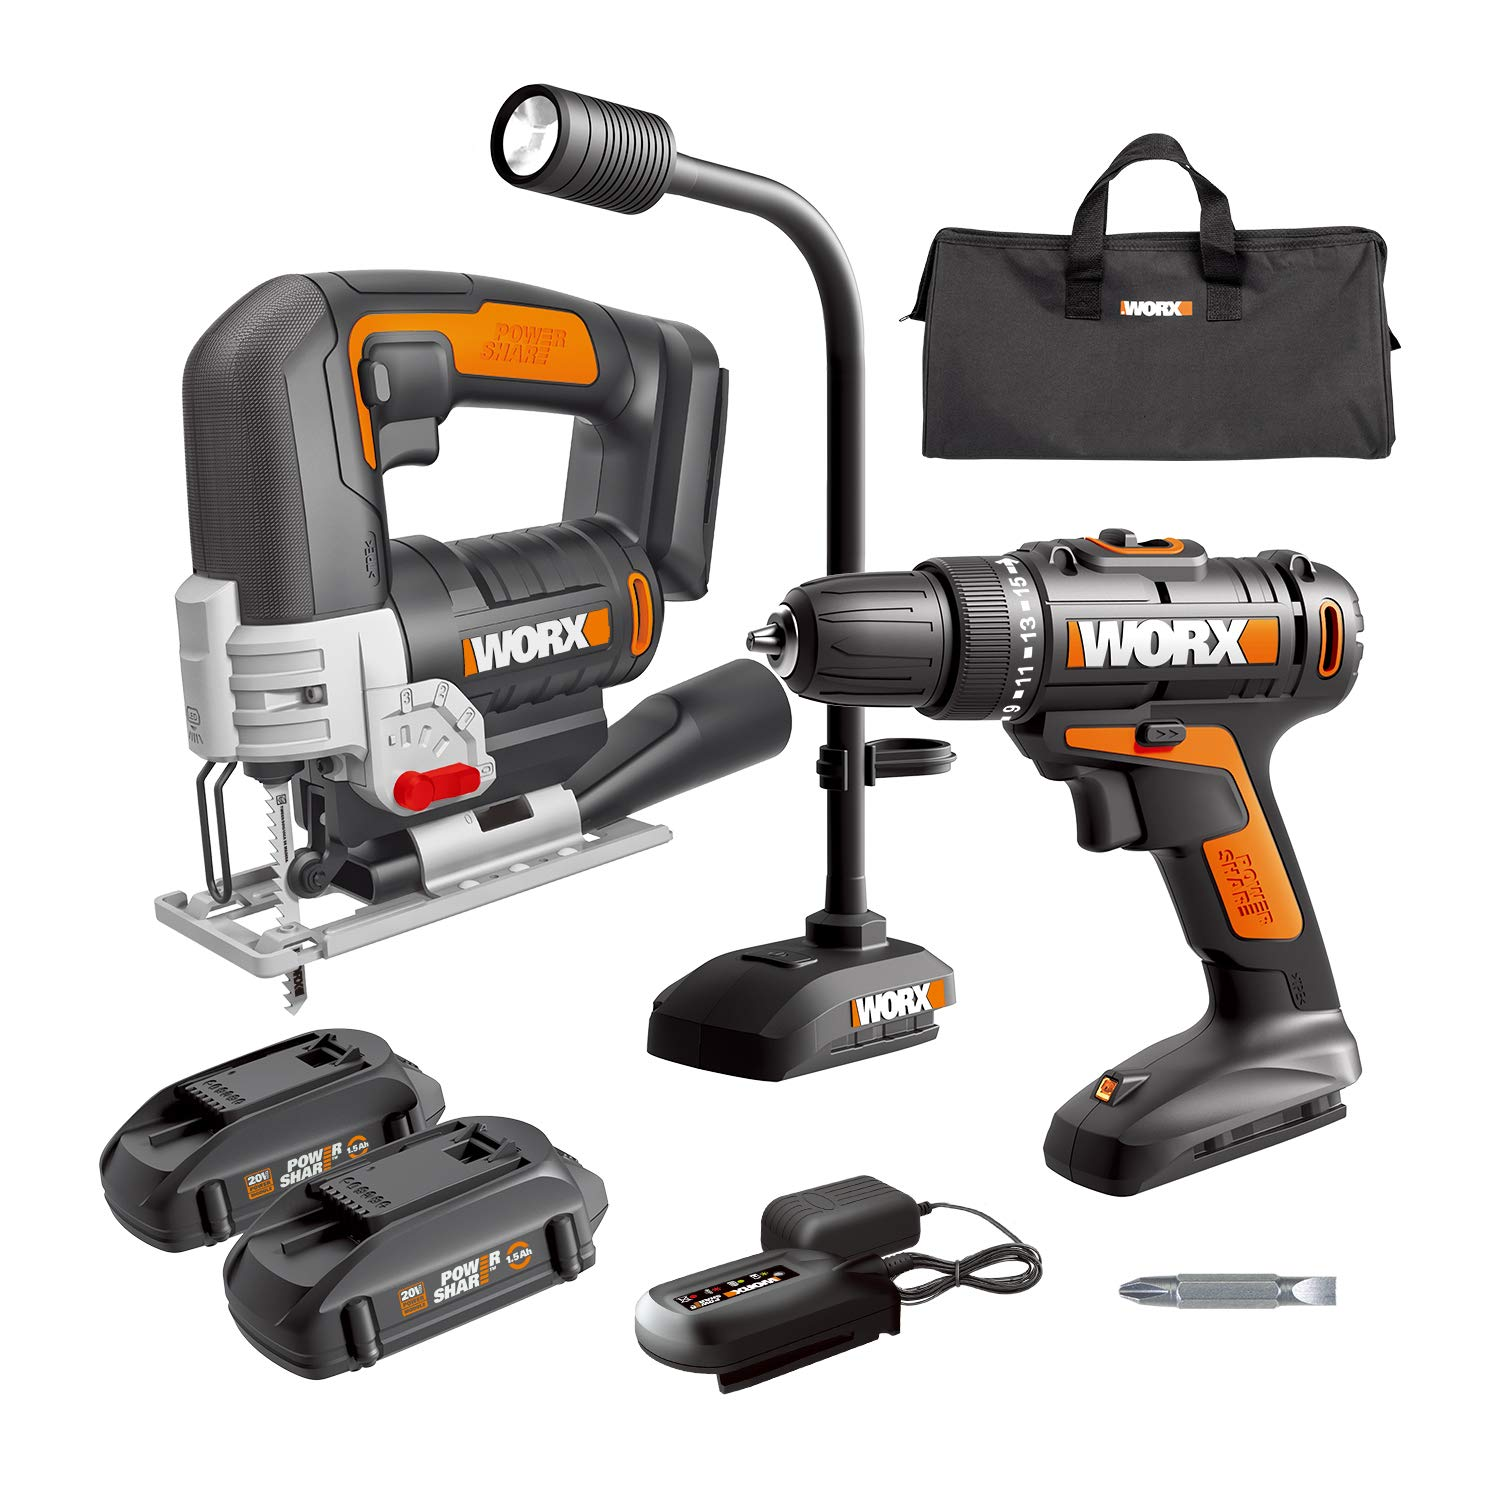 Dremel US40-03 Ultra-Saw Tool Kit with 5 Accessories and 1 Attachment w Tile Diamond Blade